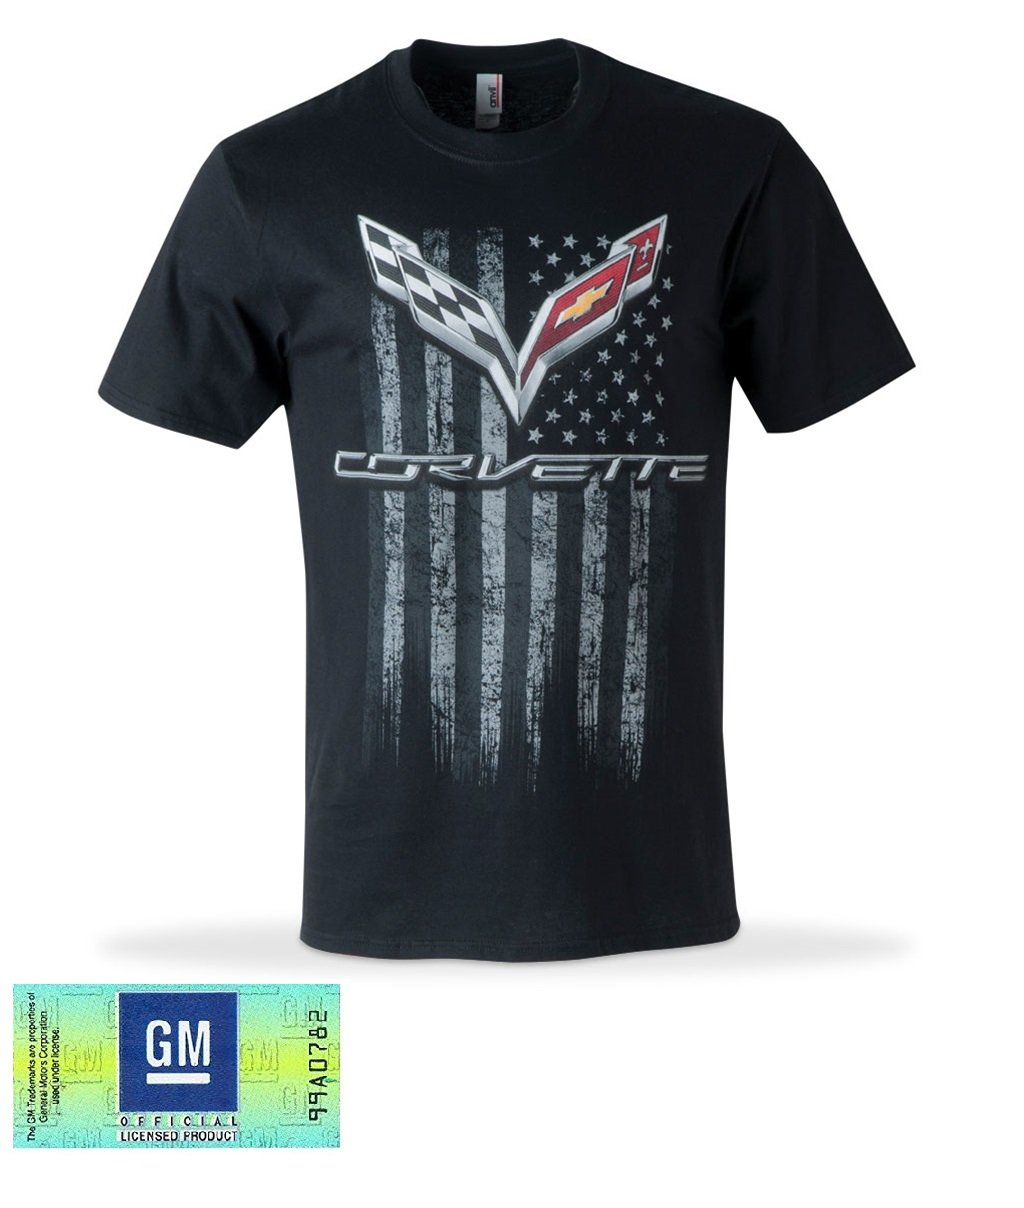 C7 Corvette American Legacy Men's T-shirt / Black (Large) West Coast Corvette / Camaro